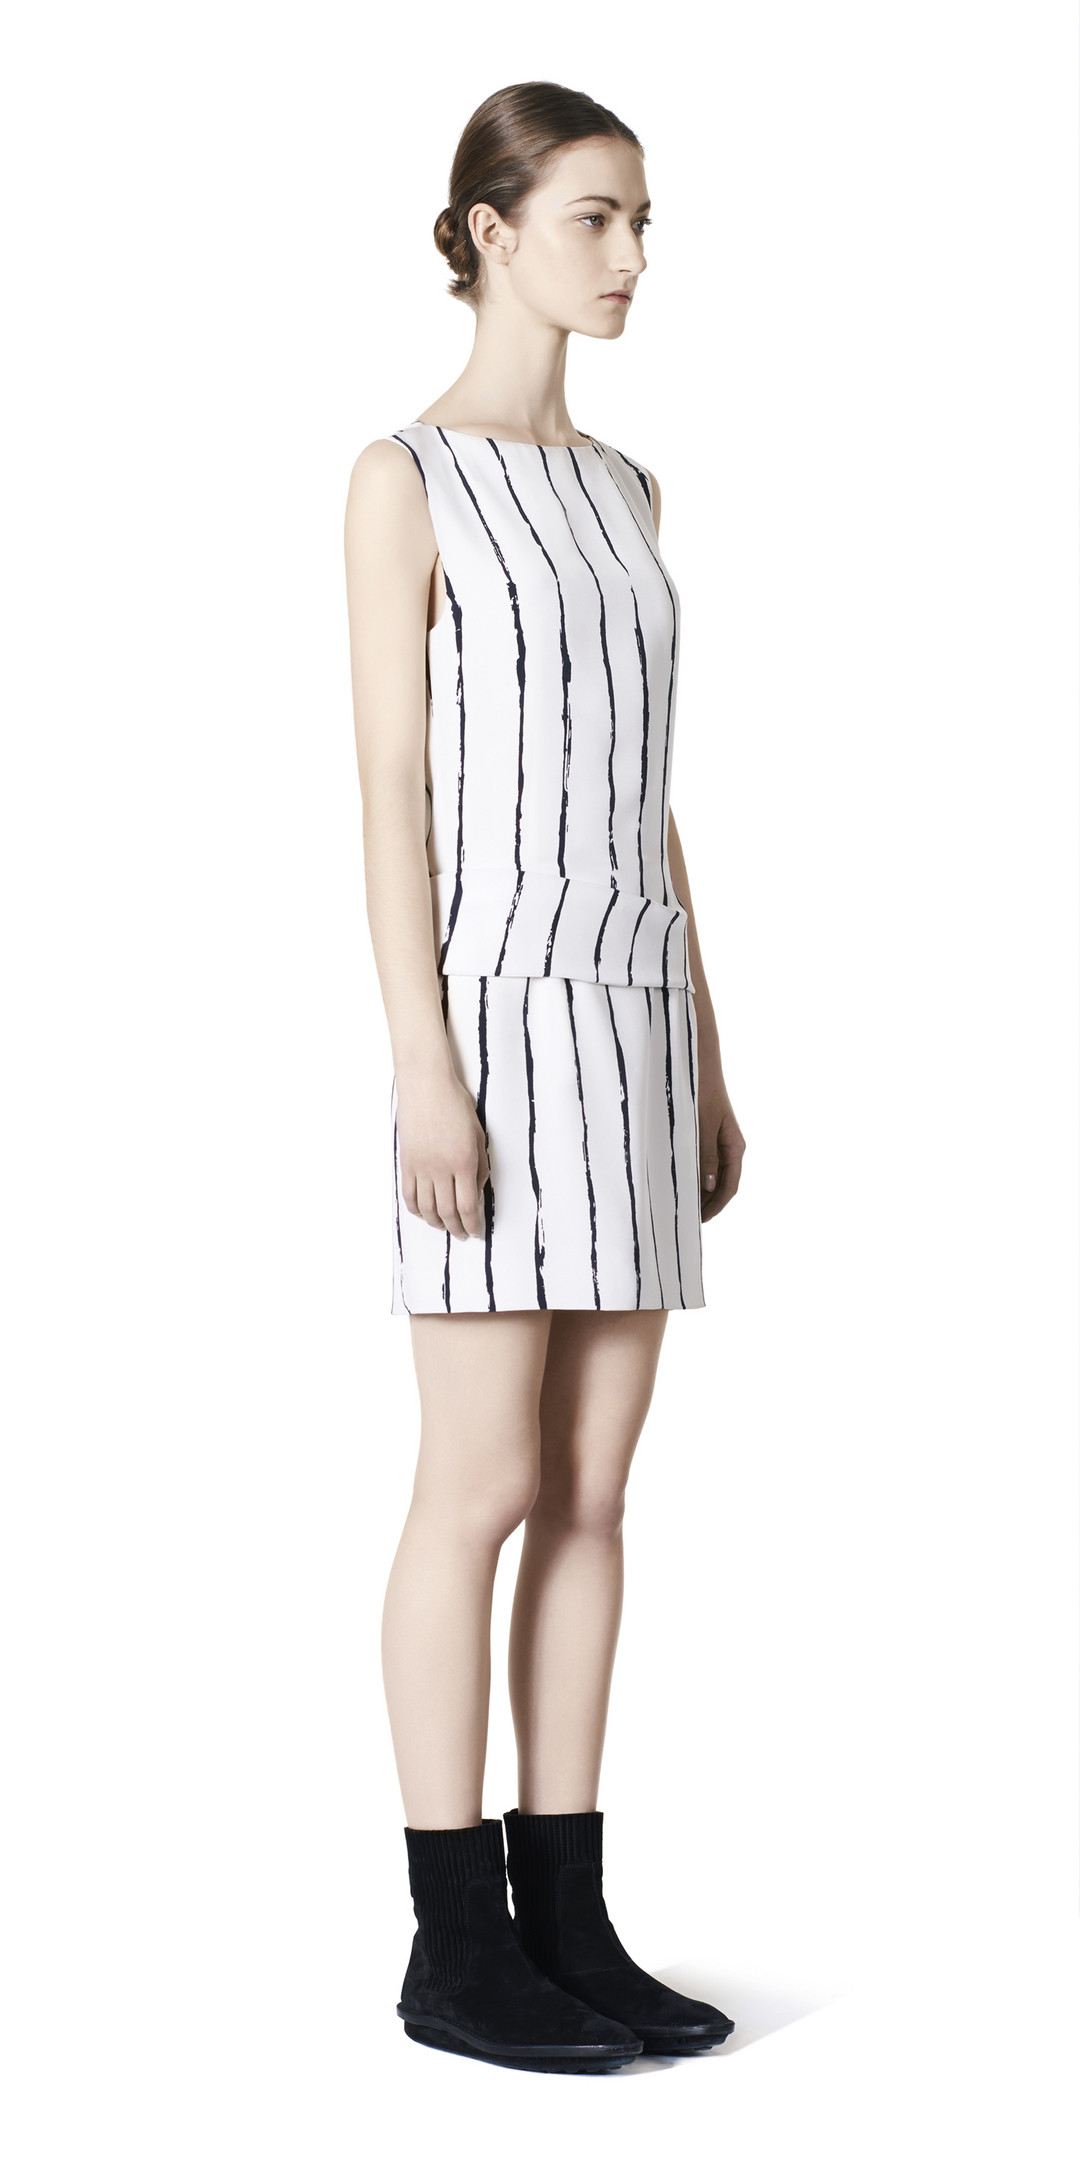 BALENCIAGA Balenciaga Edition Stripes Drapy Dress Dress D f